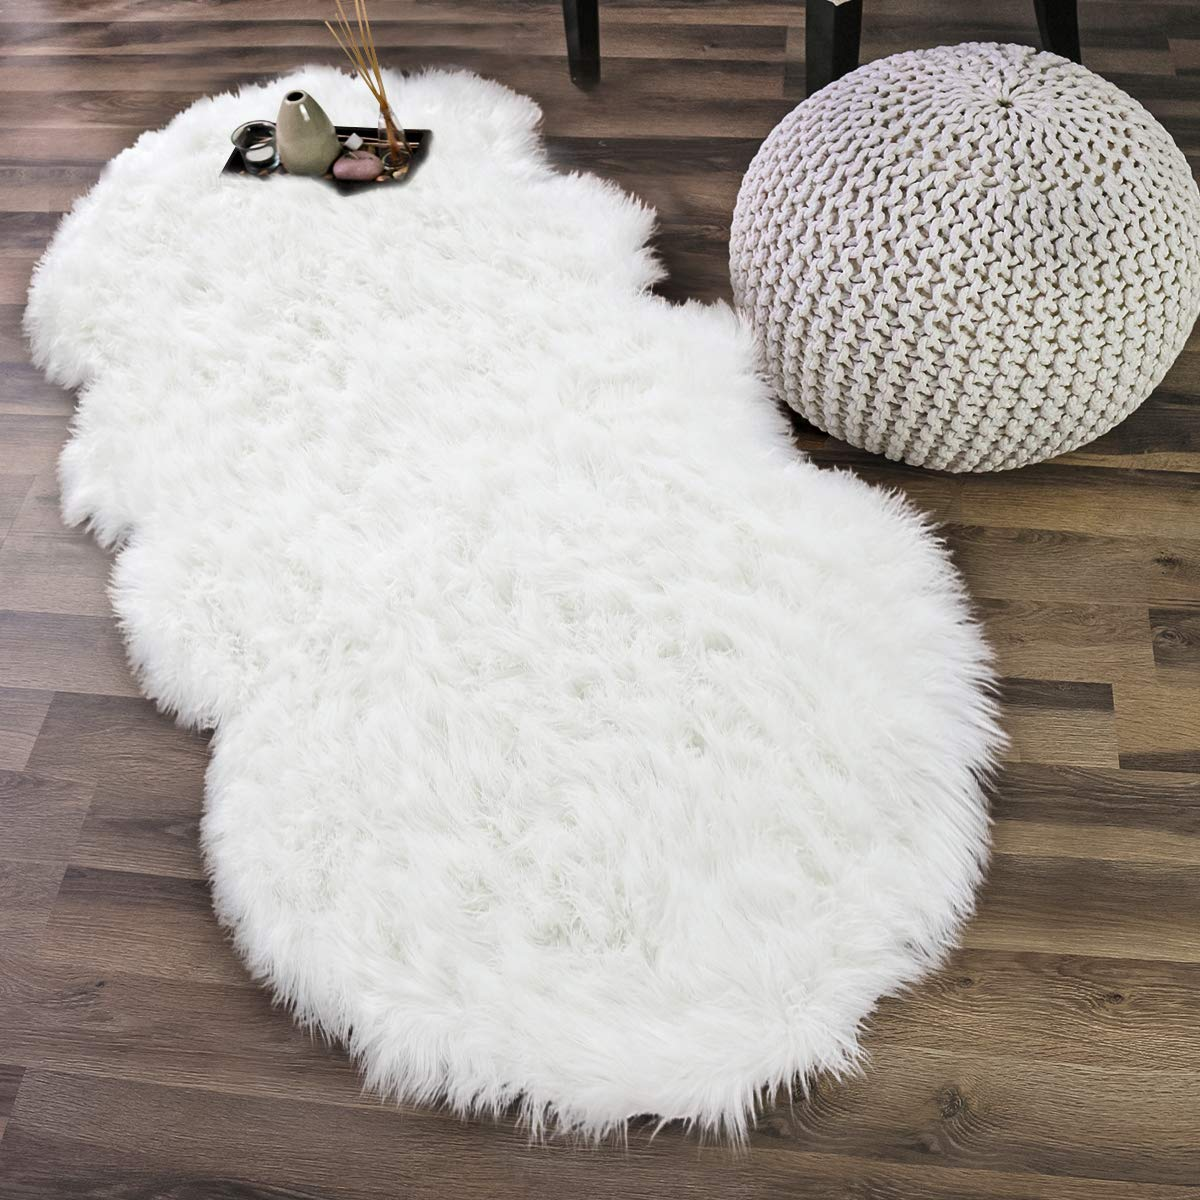 Noahas Faux Sheepskin Area Rugs Silky Long Wool Carpet for Living Room Bedroom, Children Play Dormitory Home Decor Rug, 2.6ft x 5.2ft, White by Noahas